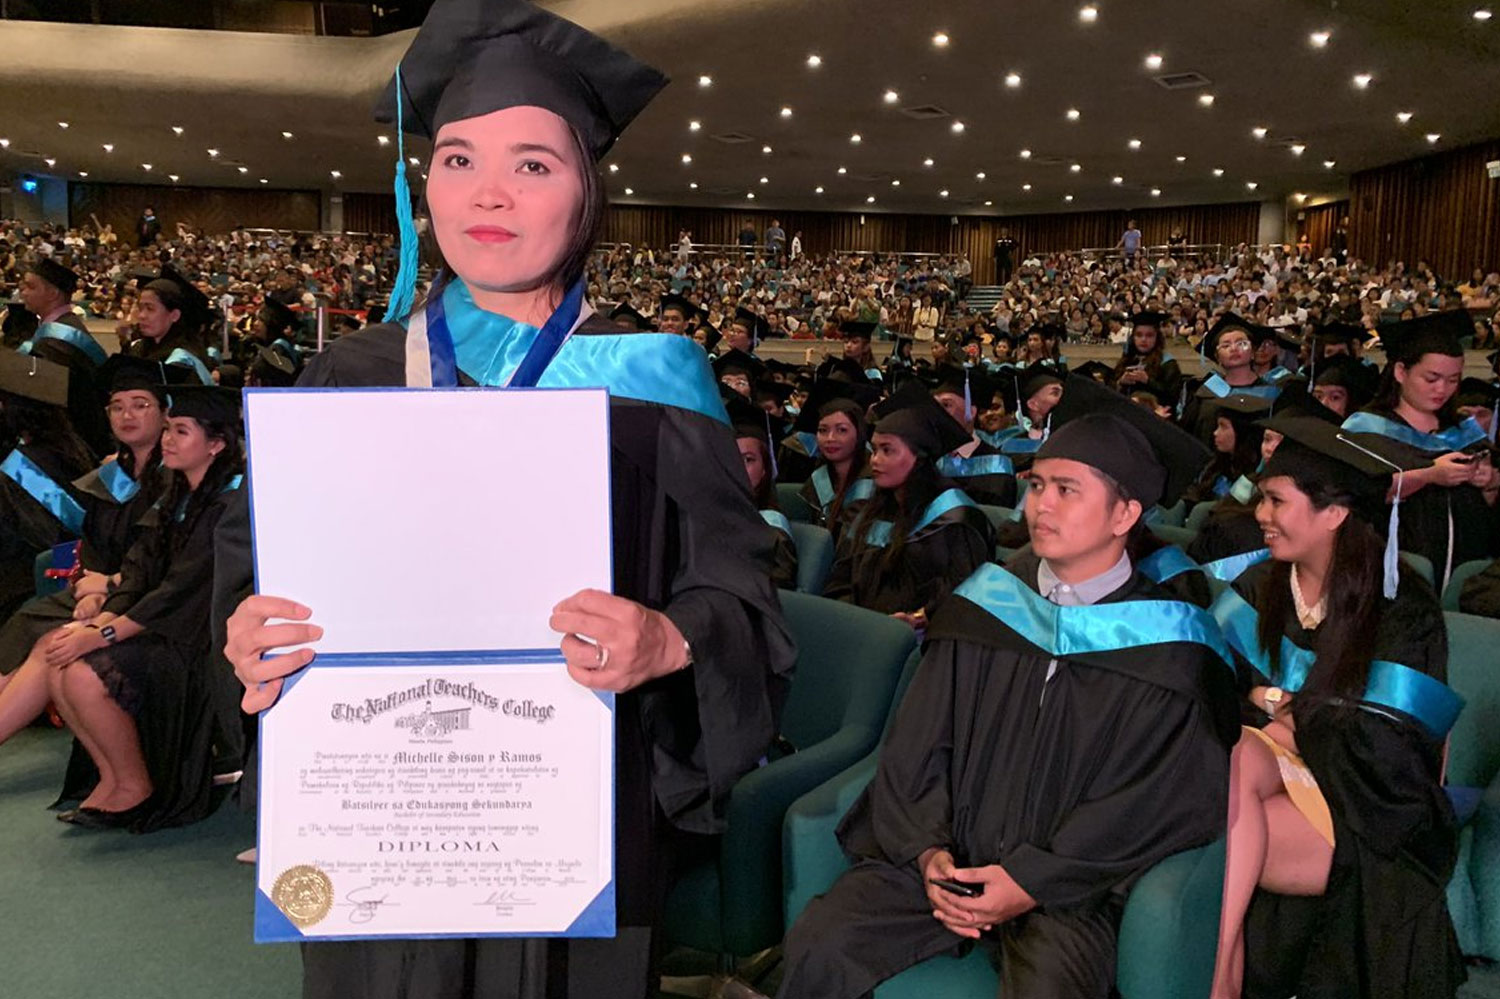 Single mother Michele Sison Cum laude graduate